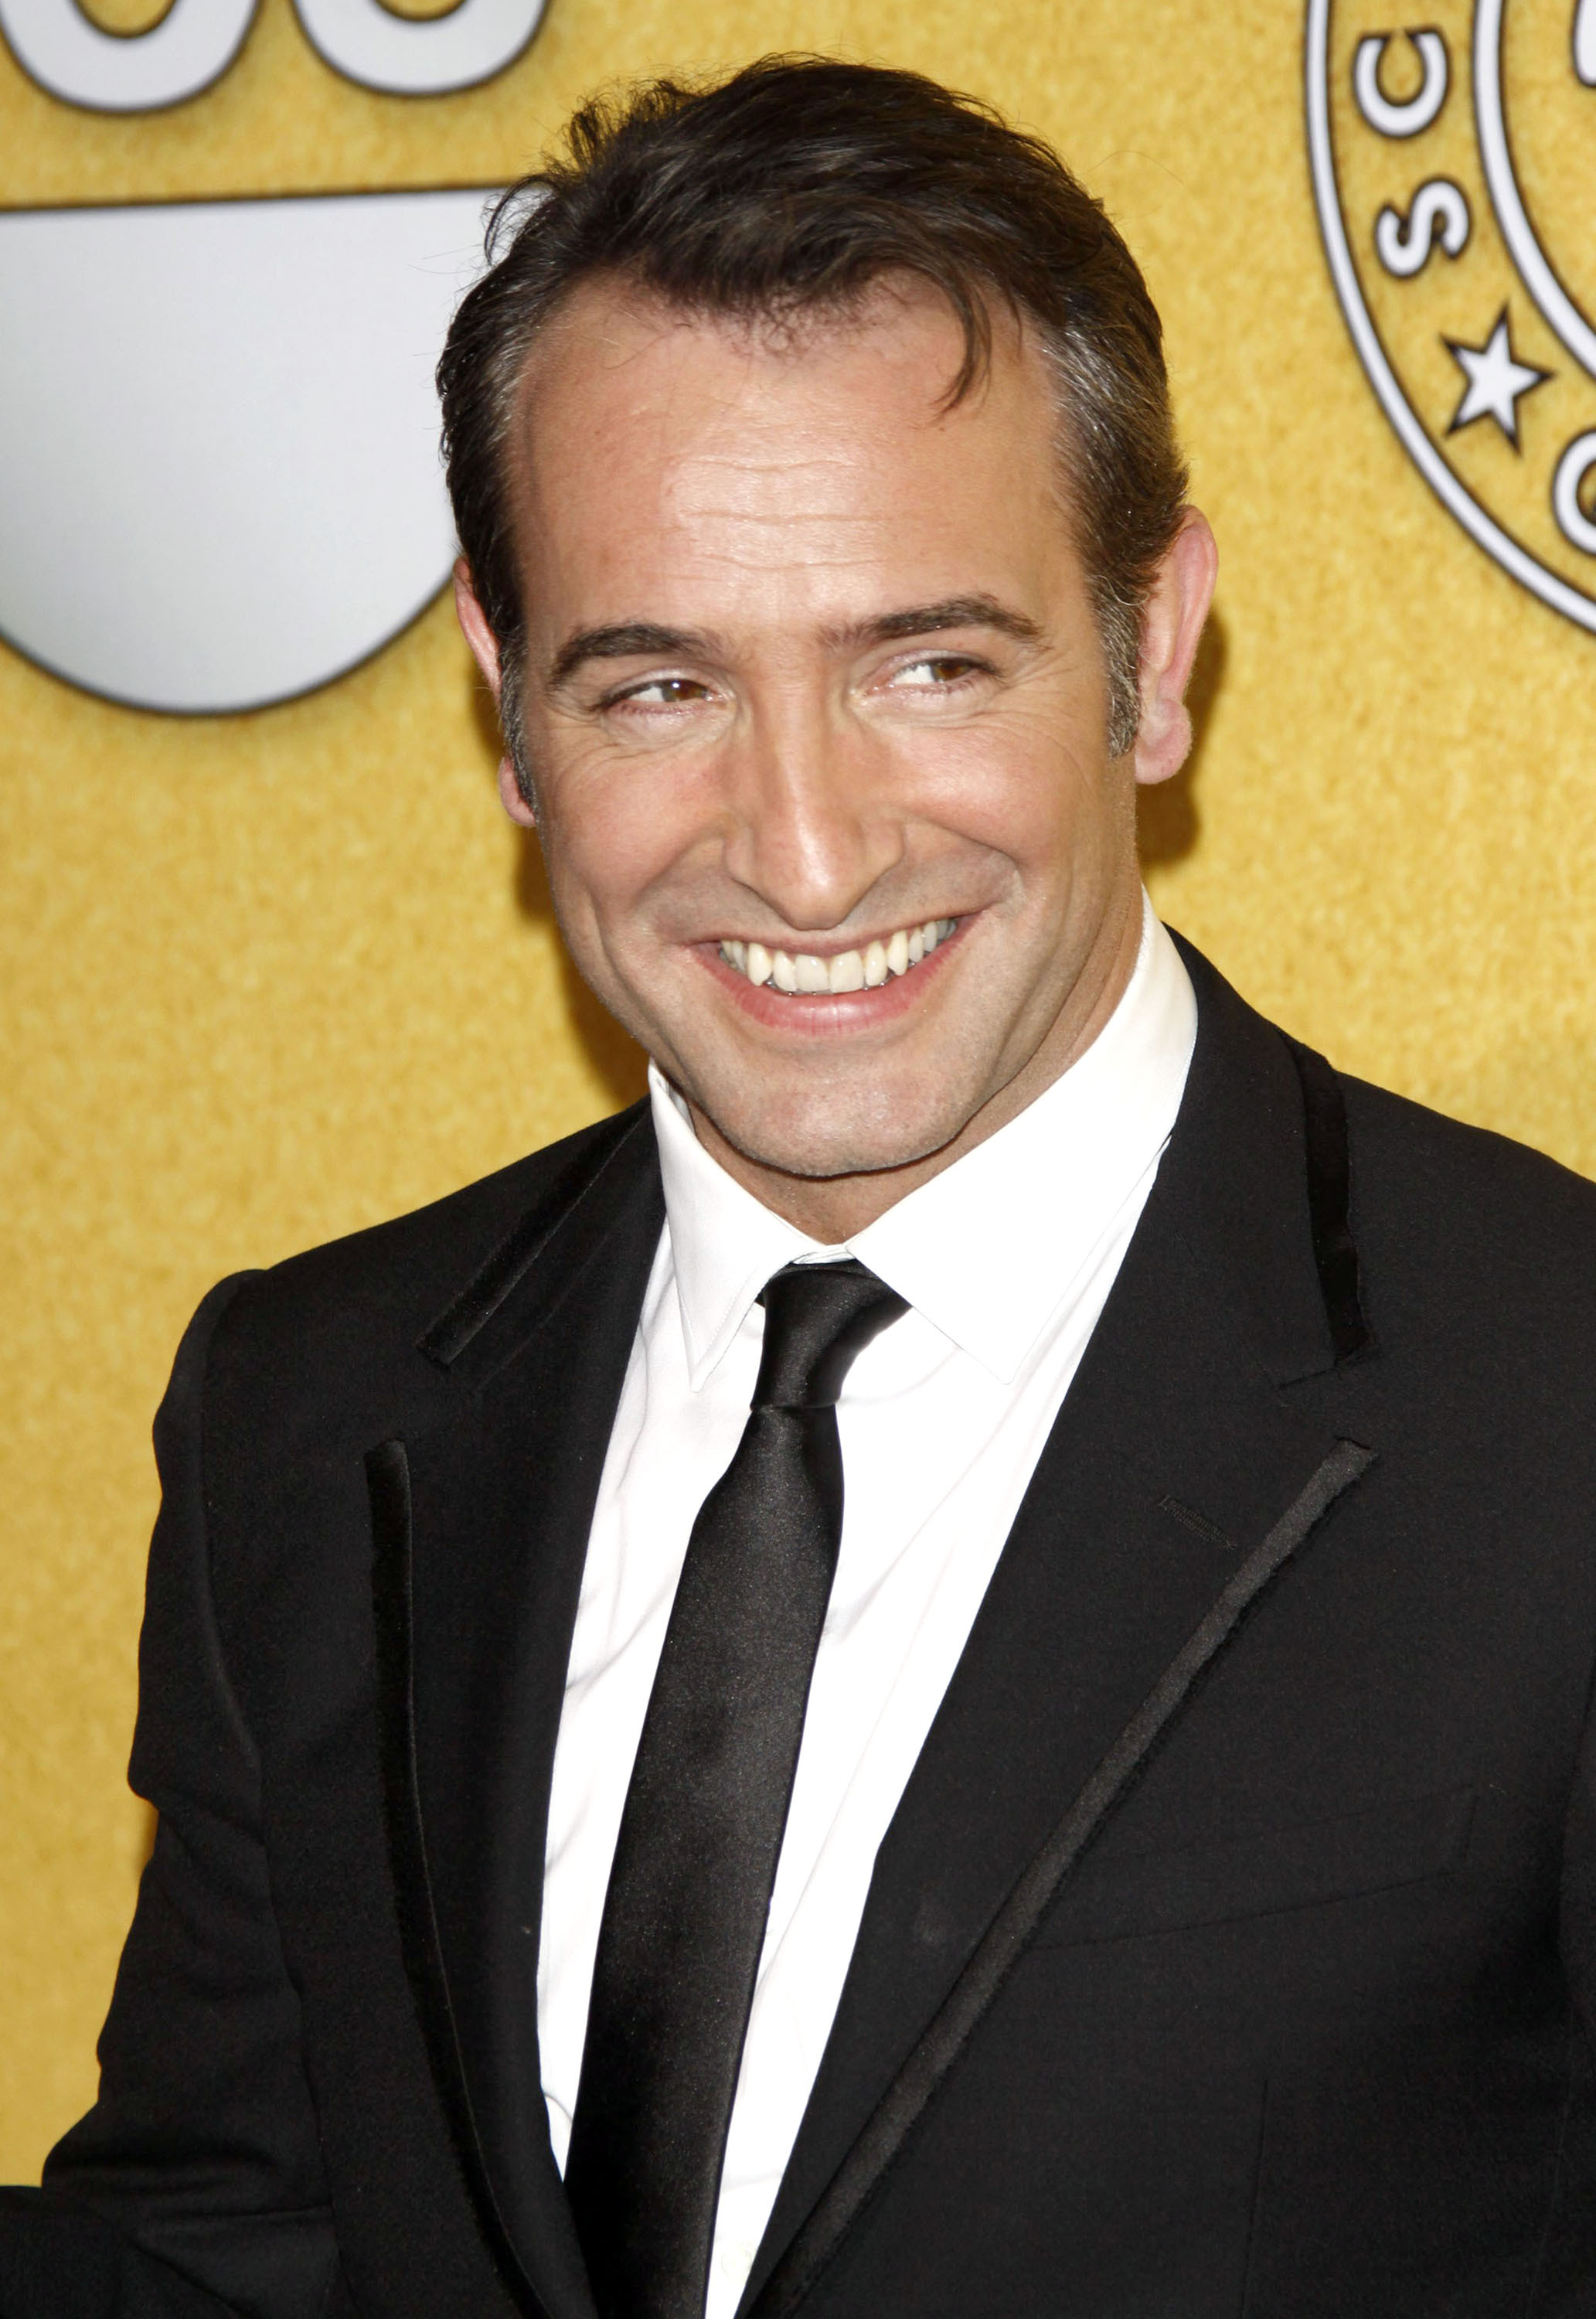 Jean dujardin jean dujardin height for Jean dujardin 2017